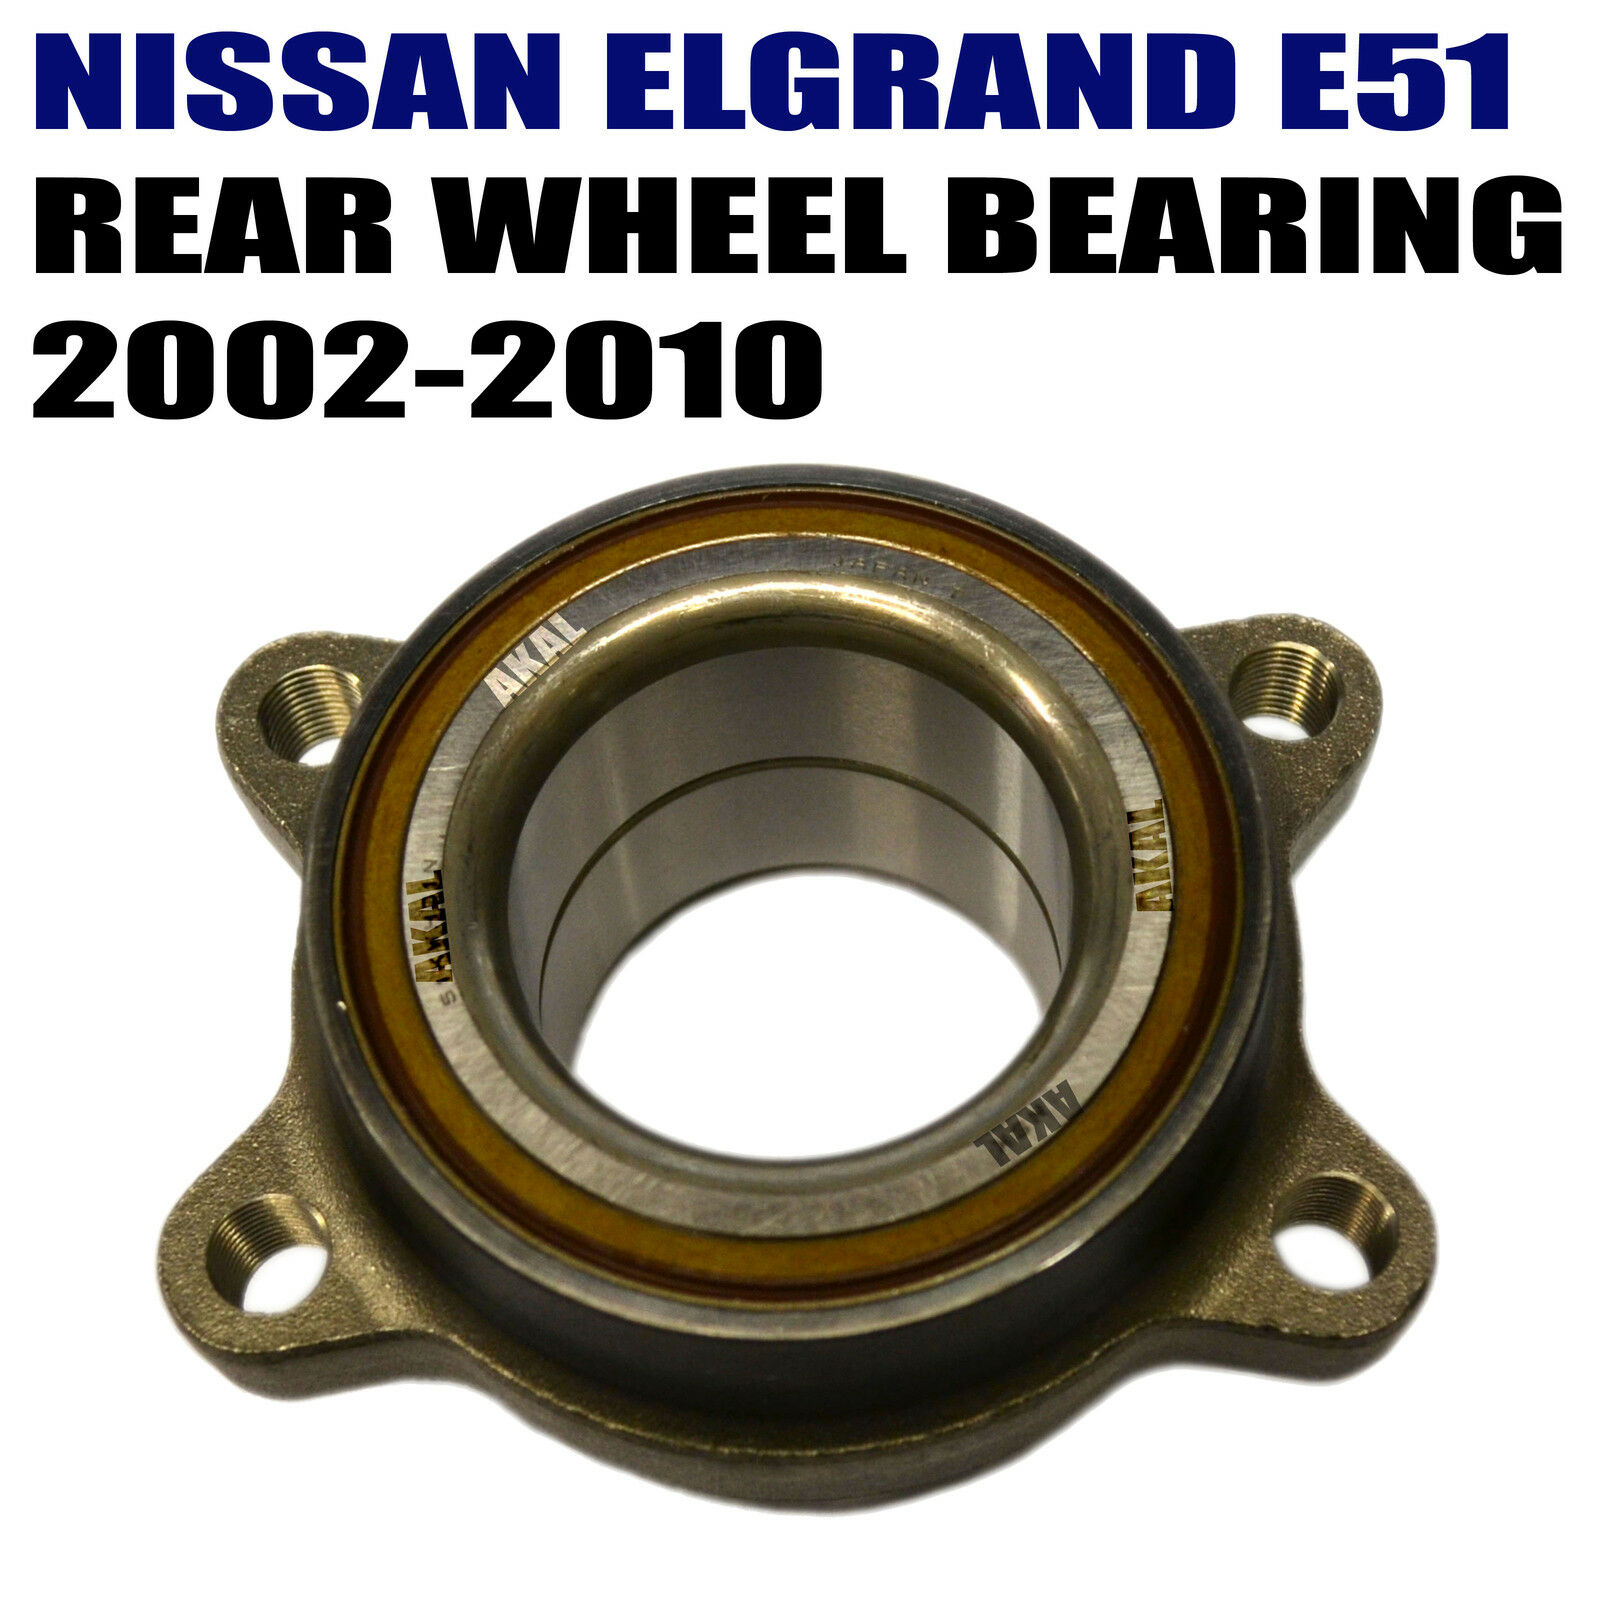 For Nissan Elgrand E51 25i 35i 02 10 Rear Axle Wheel Hub Flange Fuse Box Rescontentglobalinflowinflowcomponenttechnicalissues